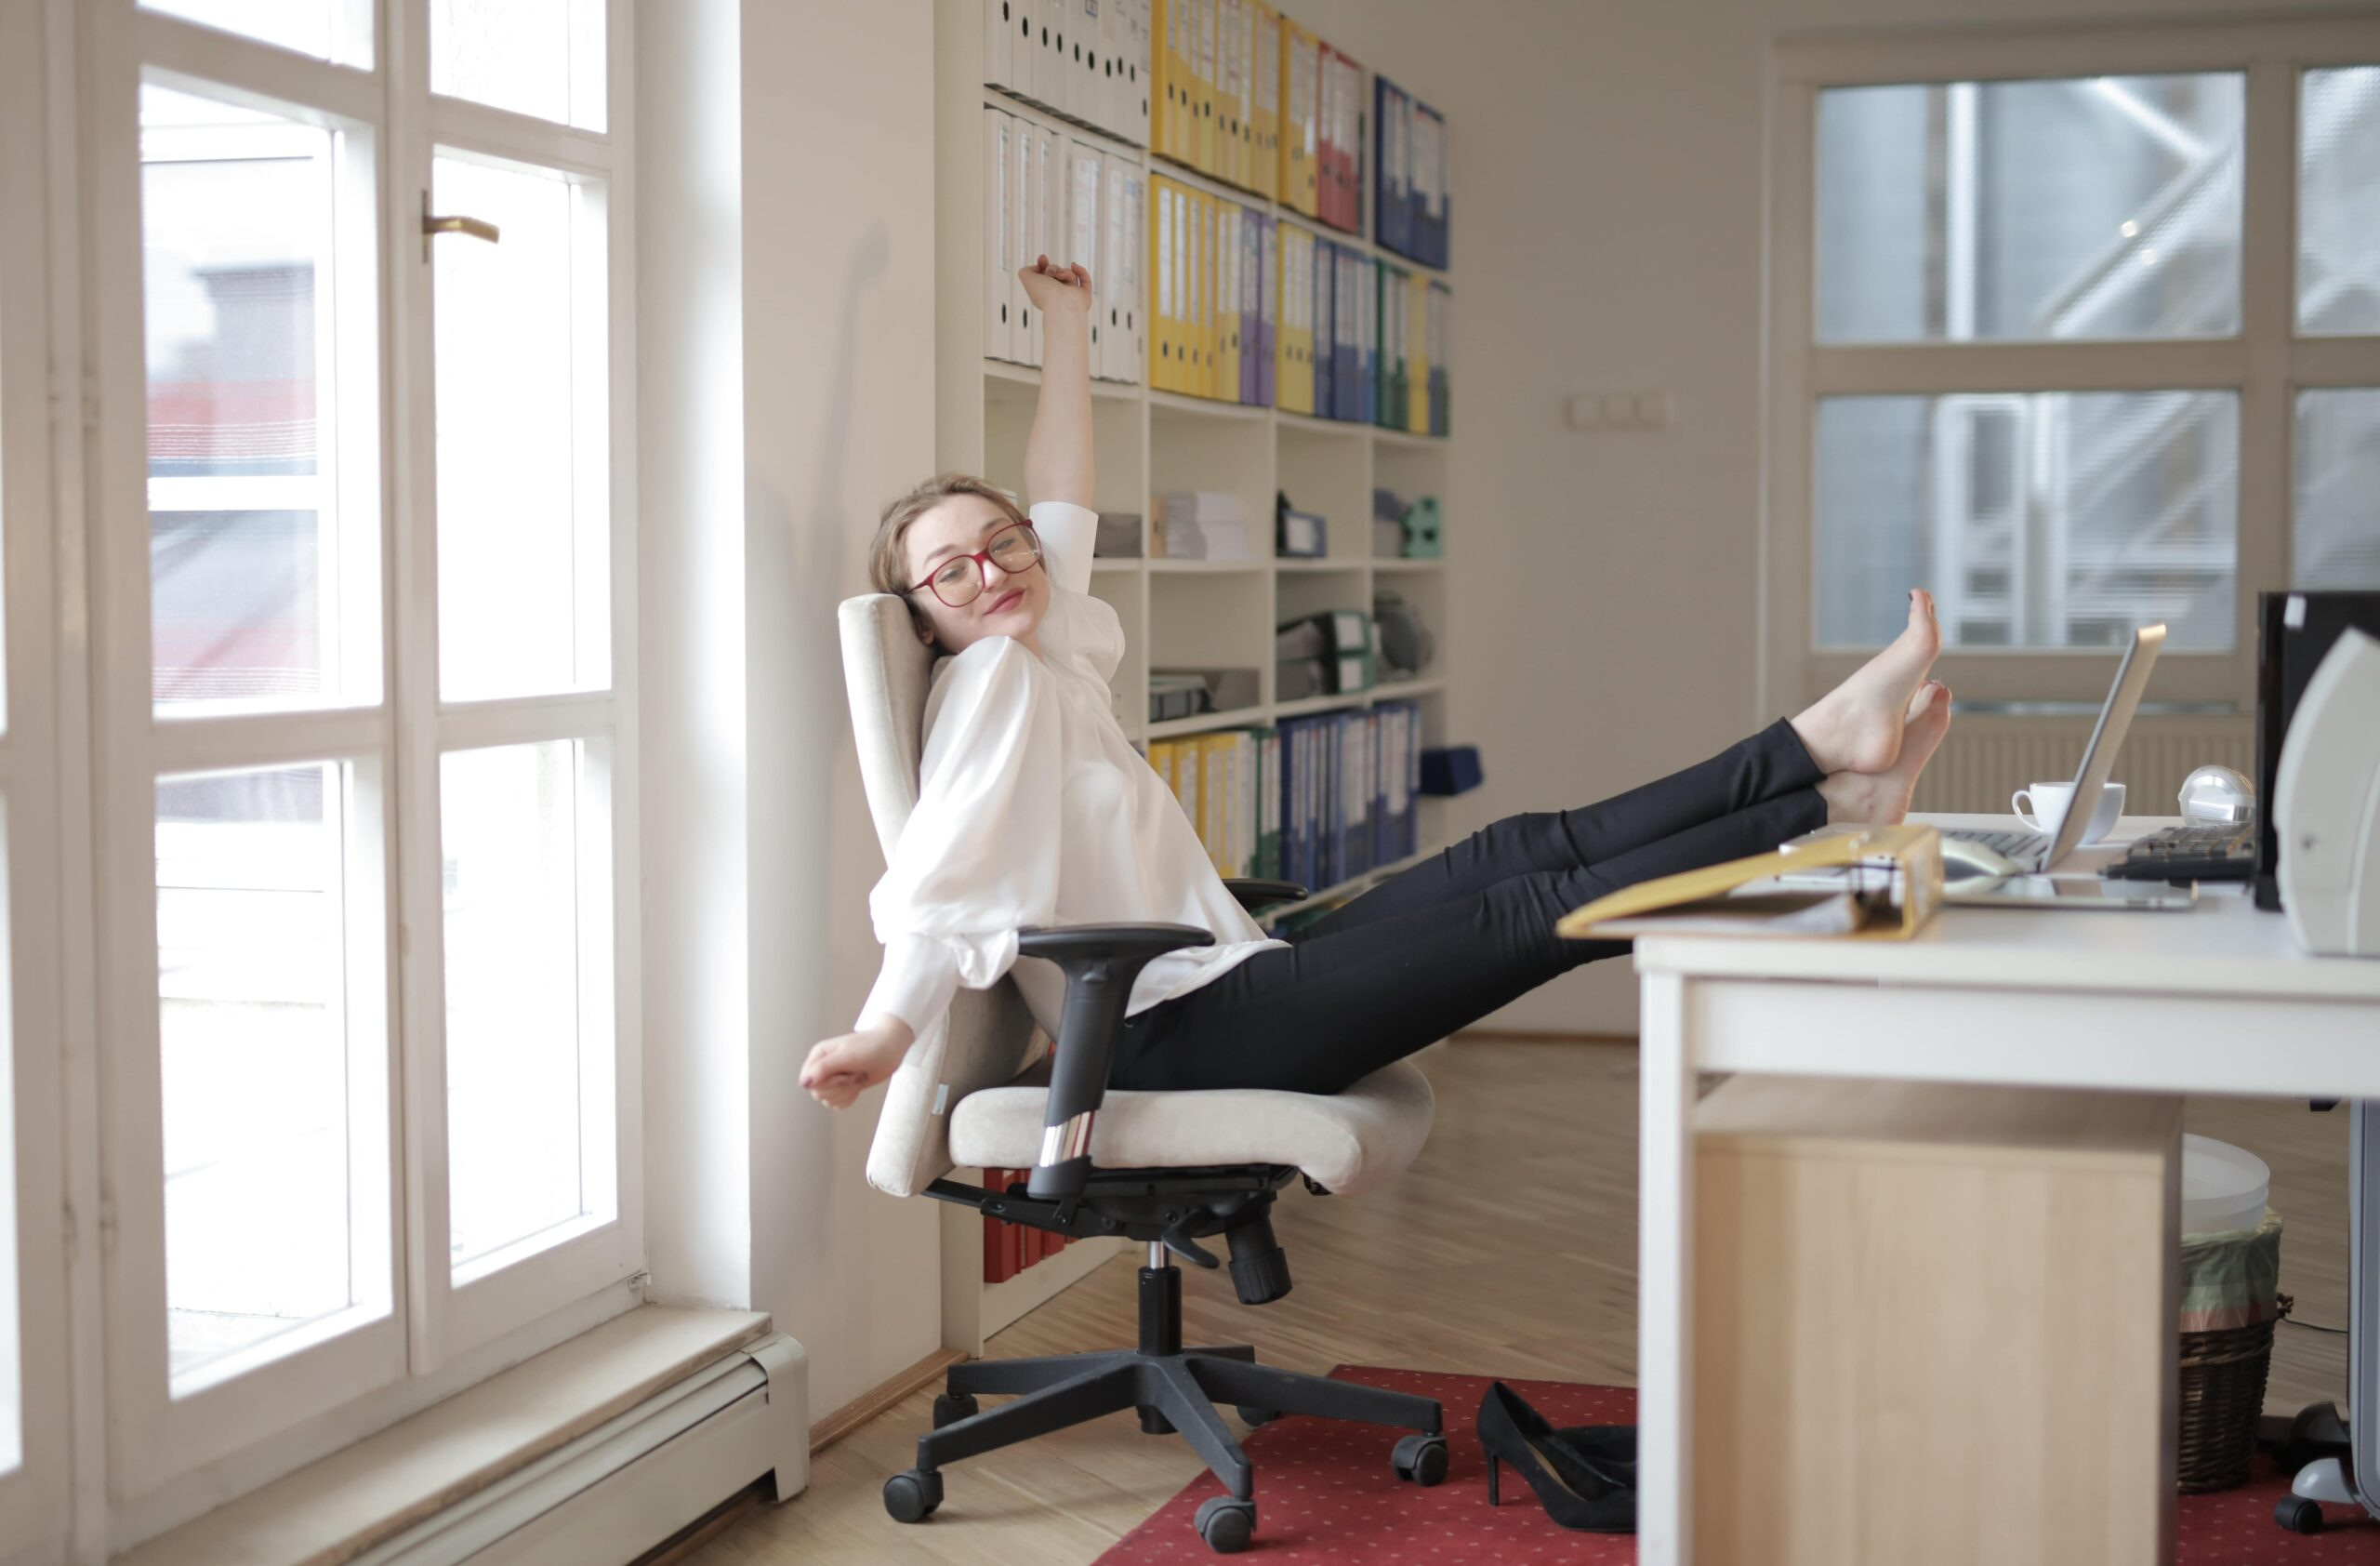 Why Choose an Ergonomic Chair?